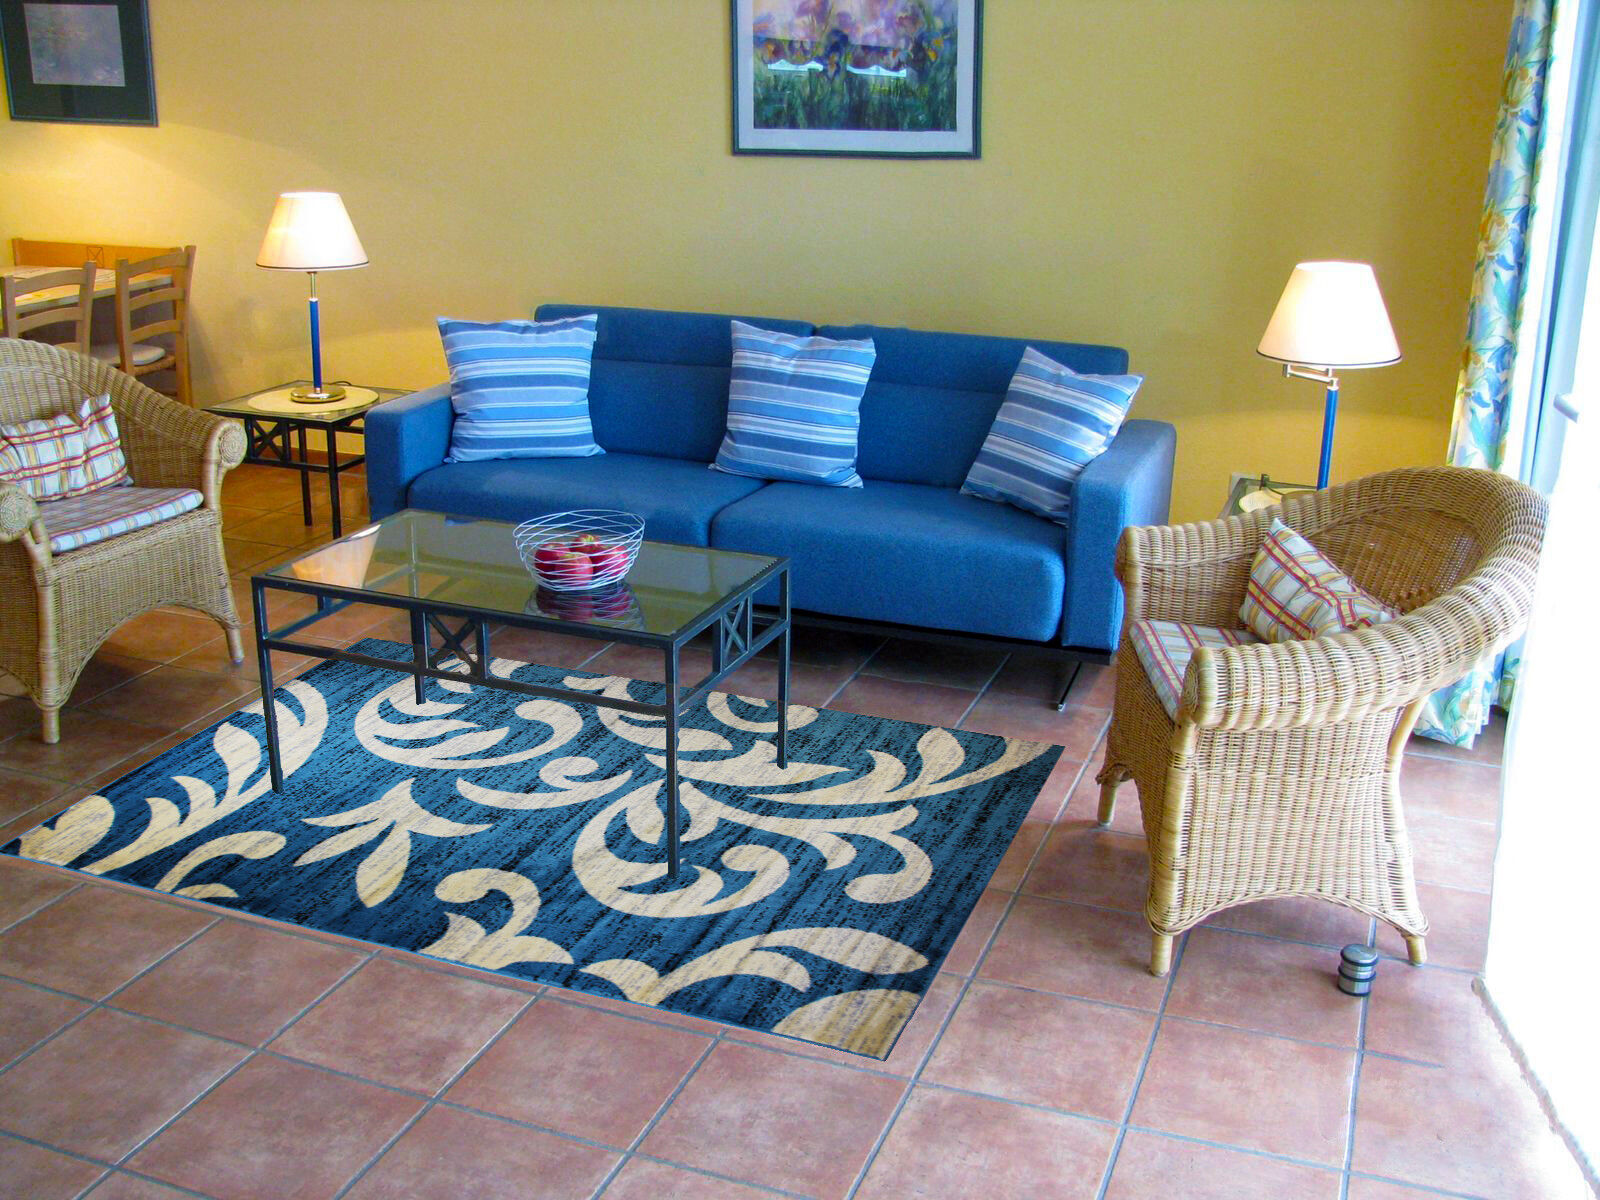 Rug Carpet Pad for Living Room Protects Floor From Dust - Mu